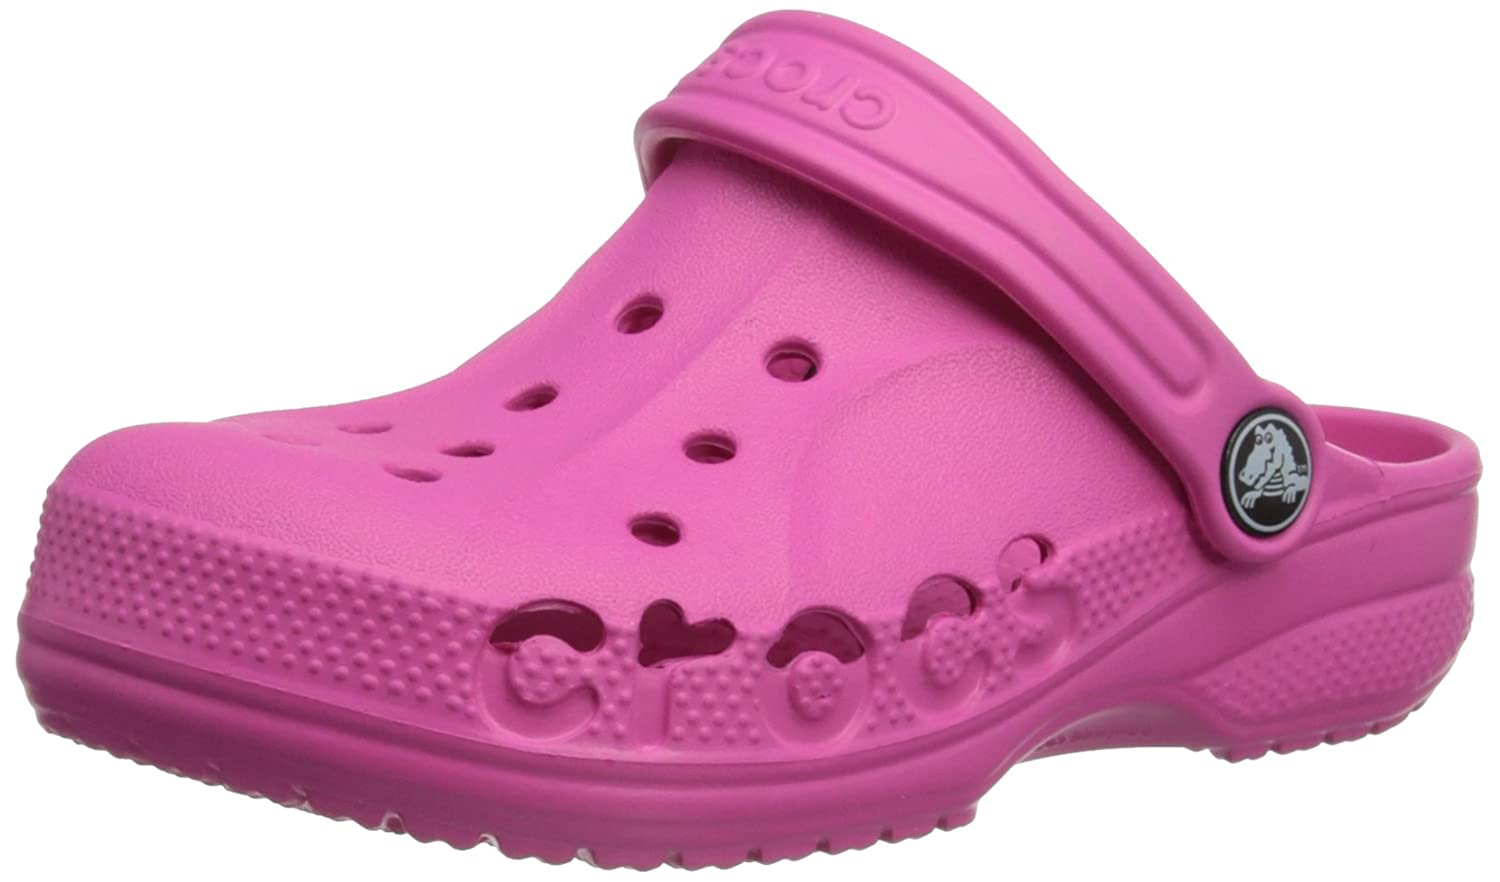 2a35150a376ec Crocs Baya Kids Fuchsia  Buy Online at Low Prices in India - Amazon.in